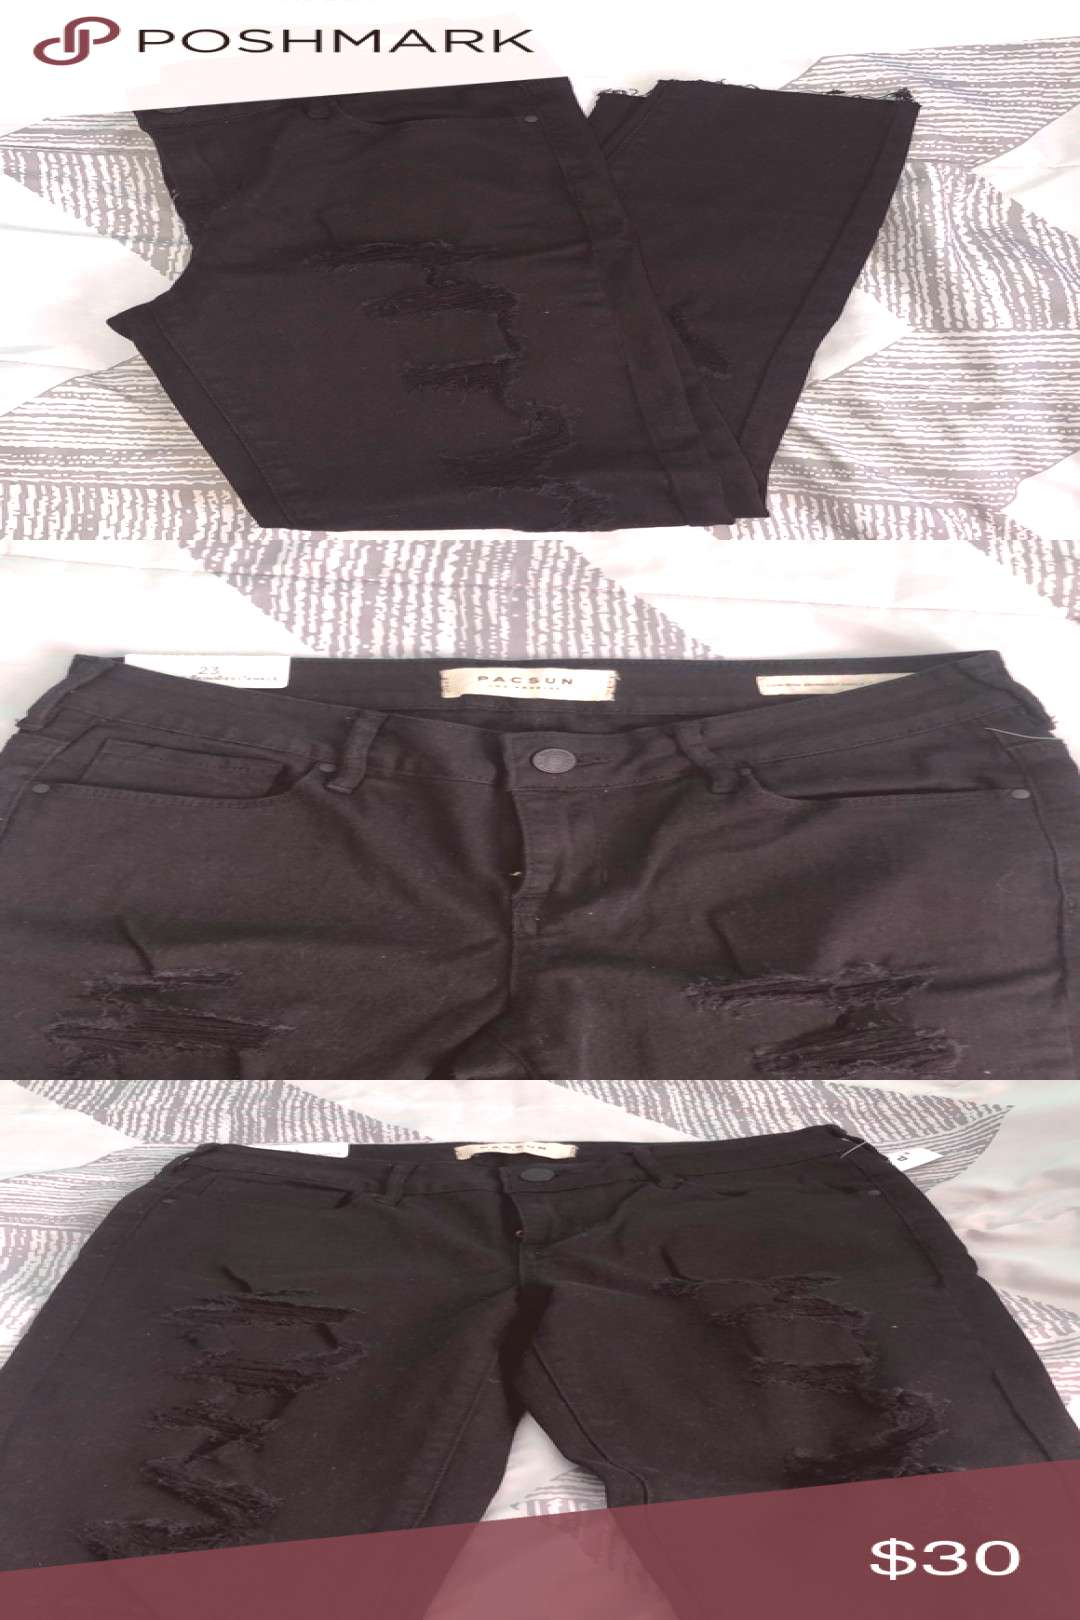 I just added this listing on Poshmark *NEW W/ TAGS* Black Ripped Pacsun Jeans.